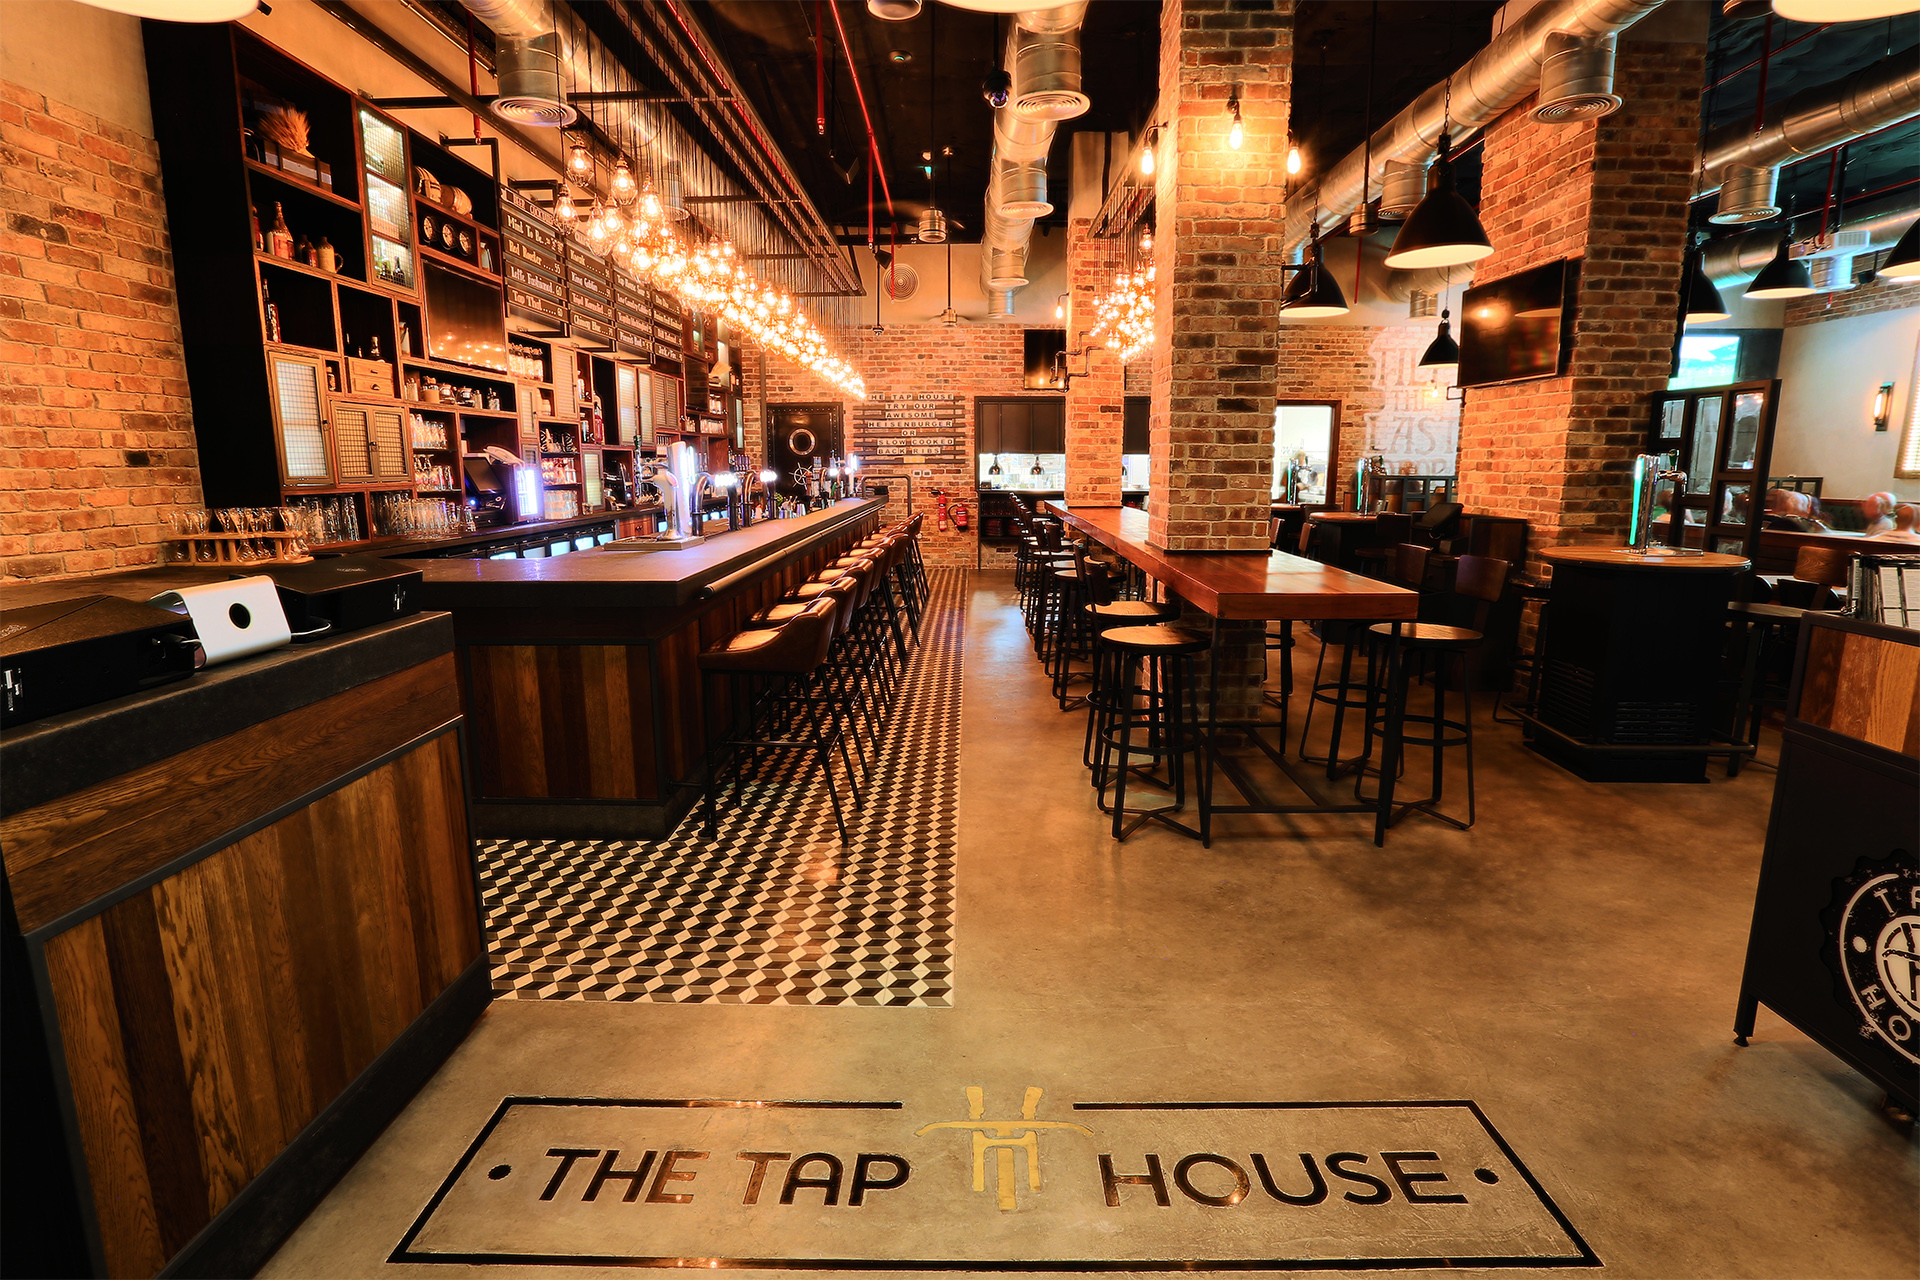 Creneau Interior Design Agency Dubai Middle East Tap House Entrance